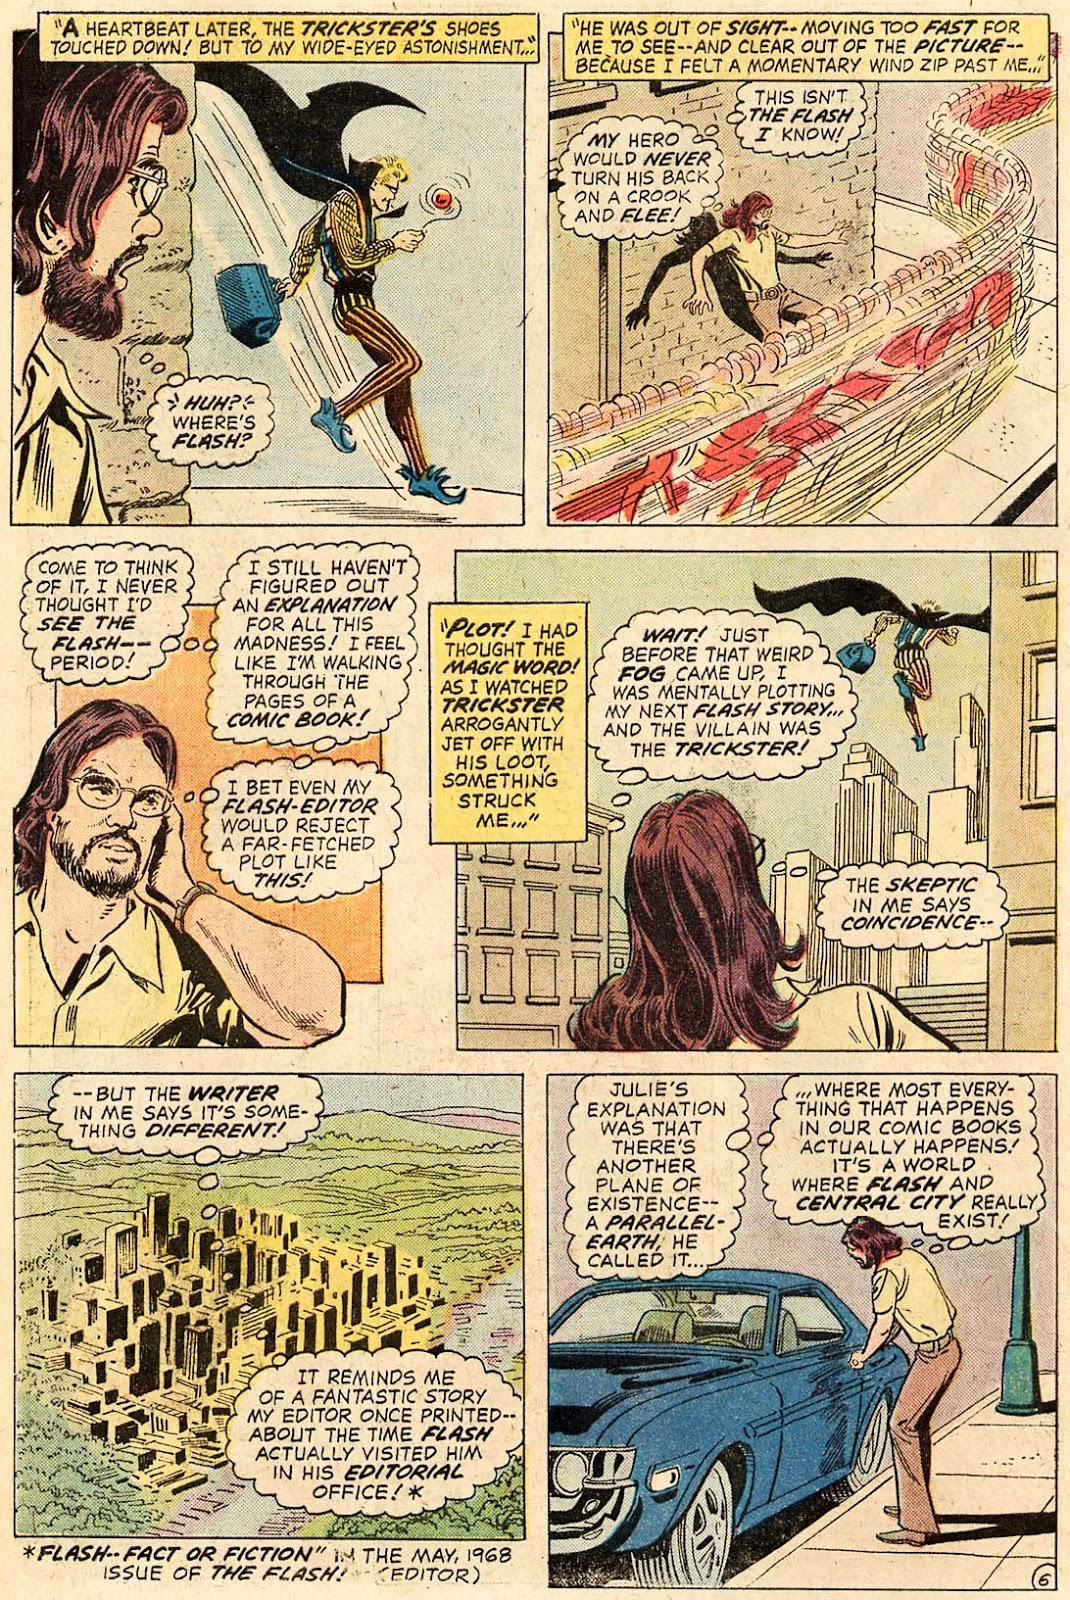 But these kinds of issues are always fun, even if it does seem slightly wrong that artist Irv Novick doesn't get to tag along as well.